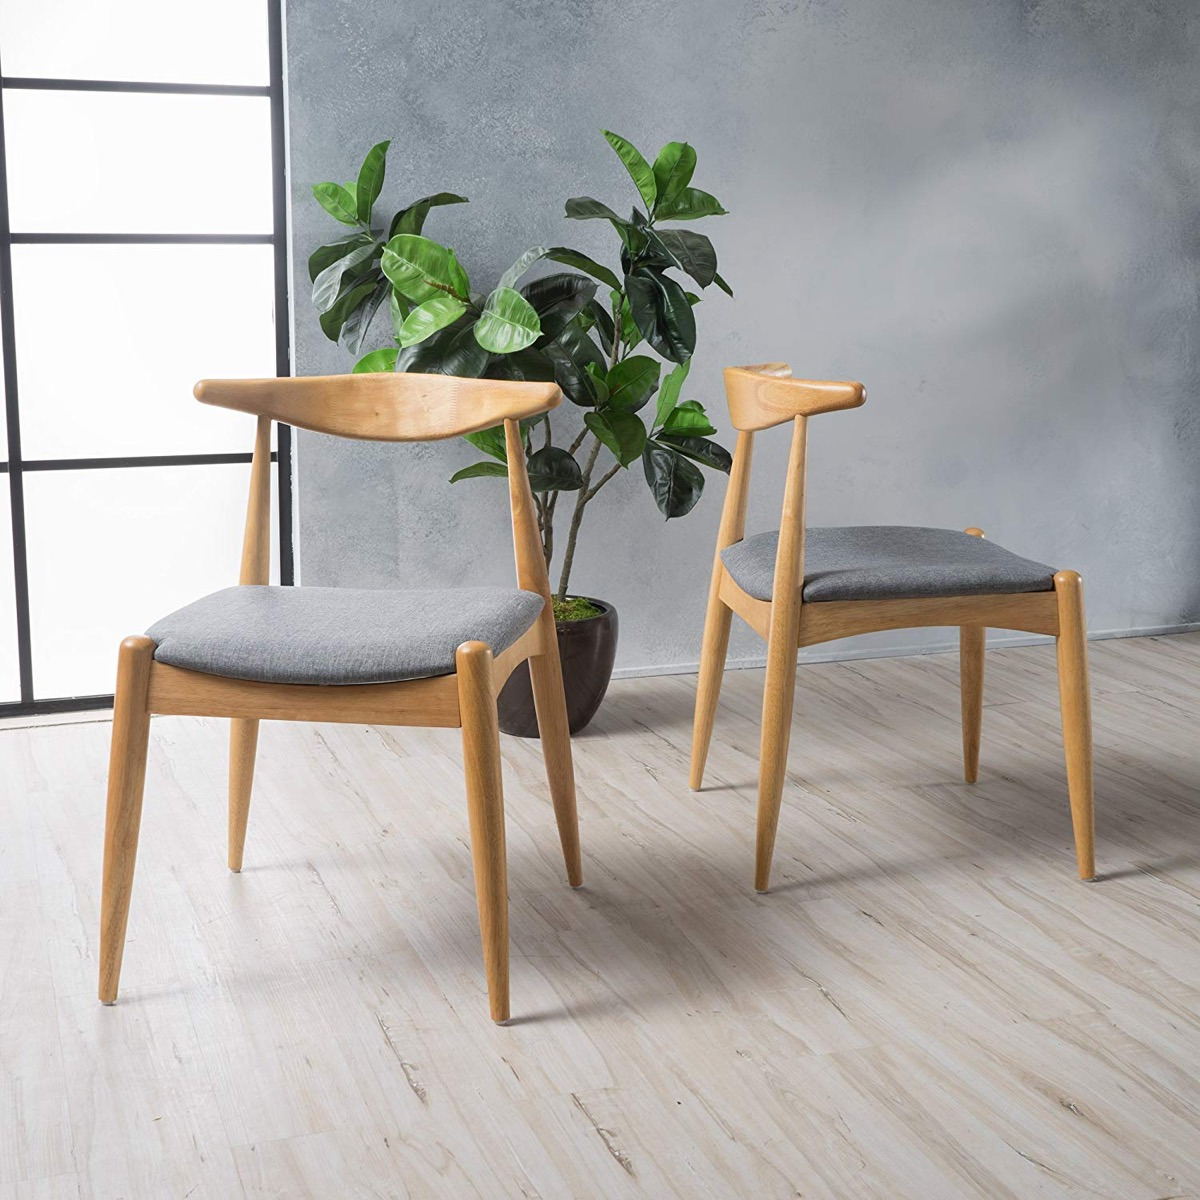 Wegner-Elbow-Style-Kitchen-Chairs-With-Grey-Cushions-And-Wood-Base